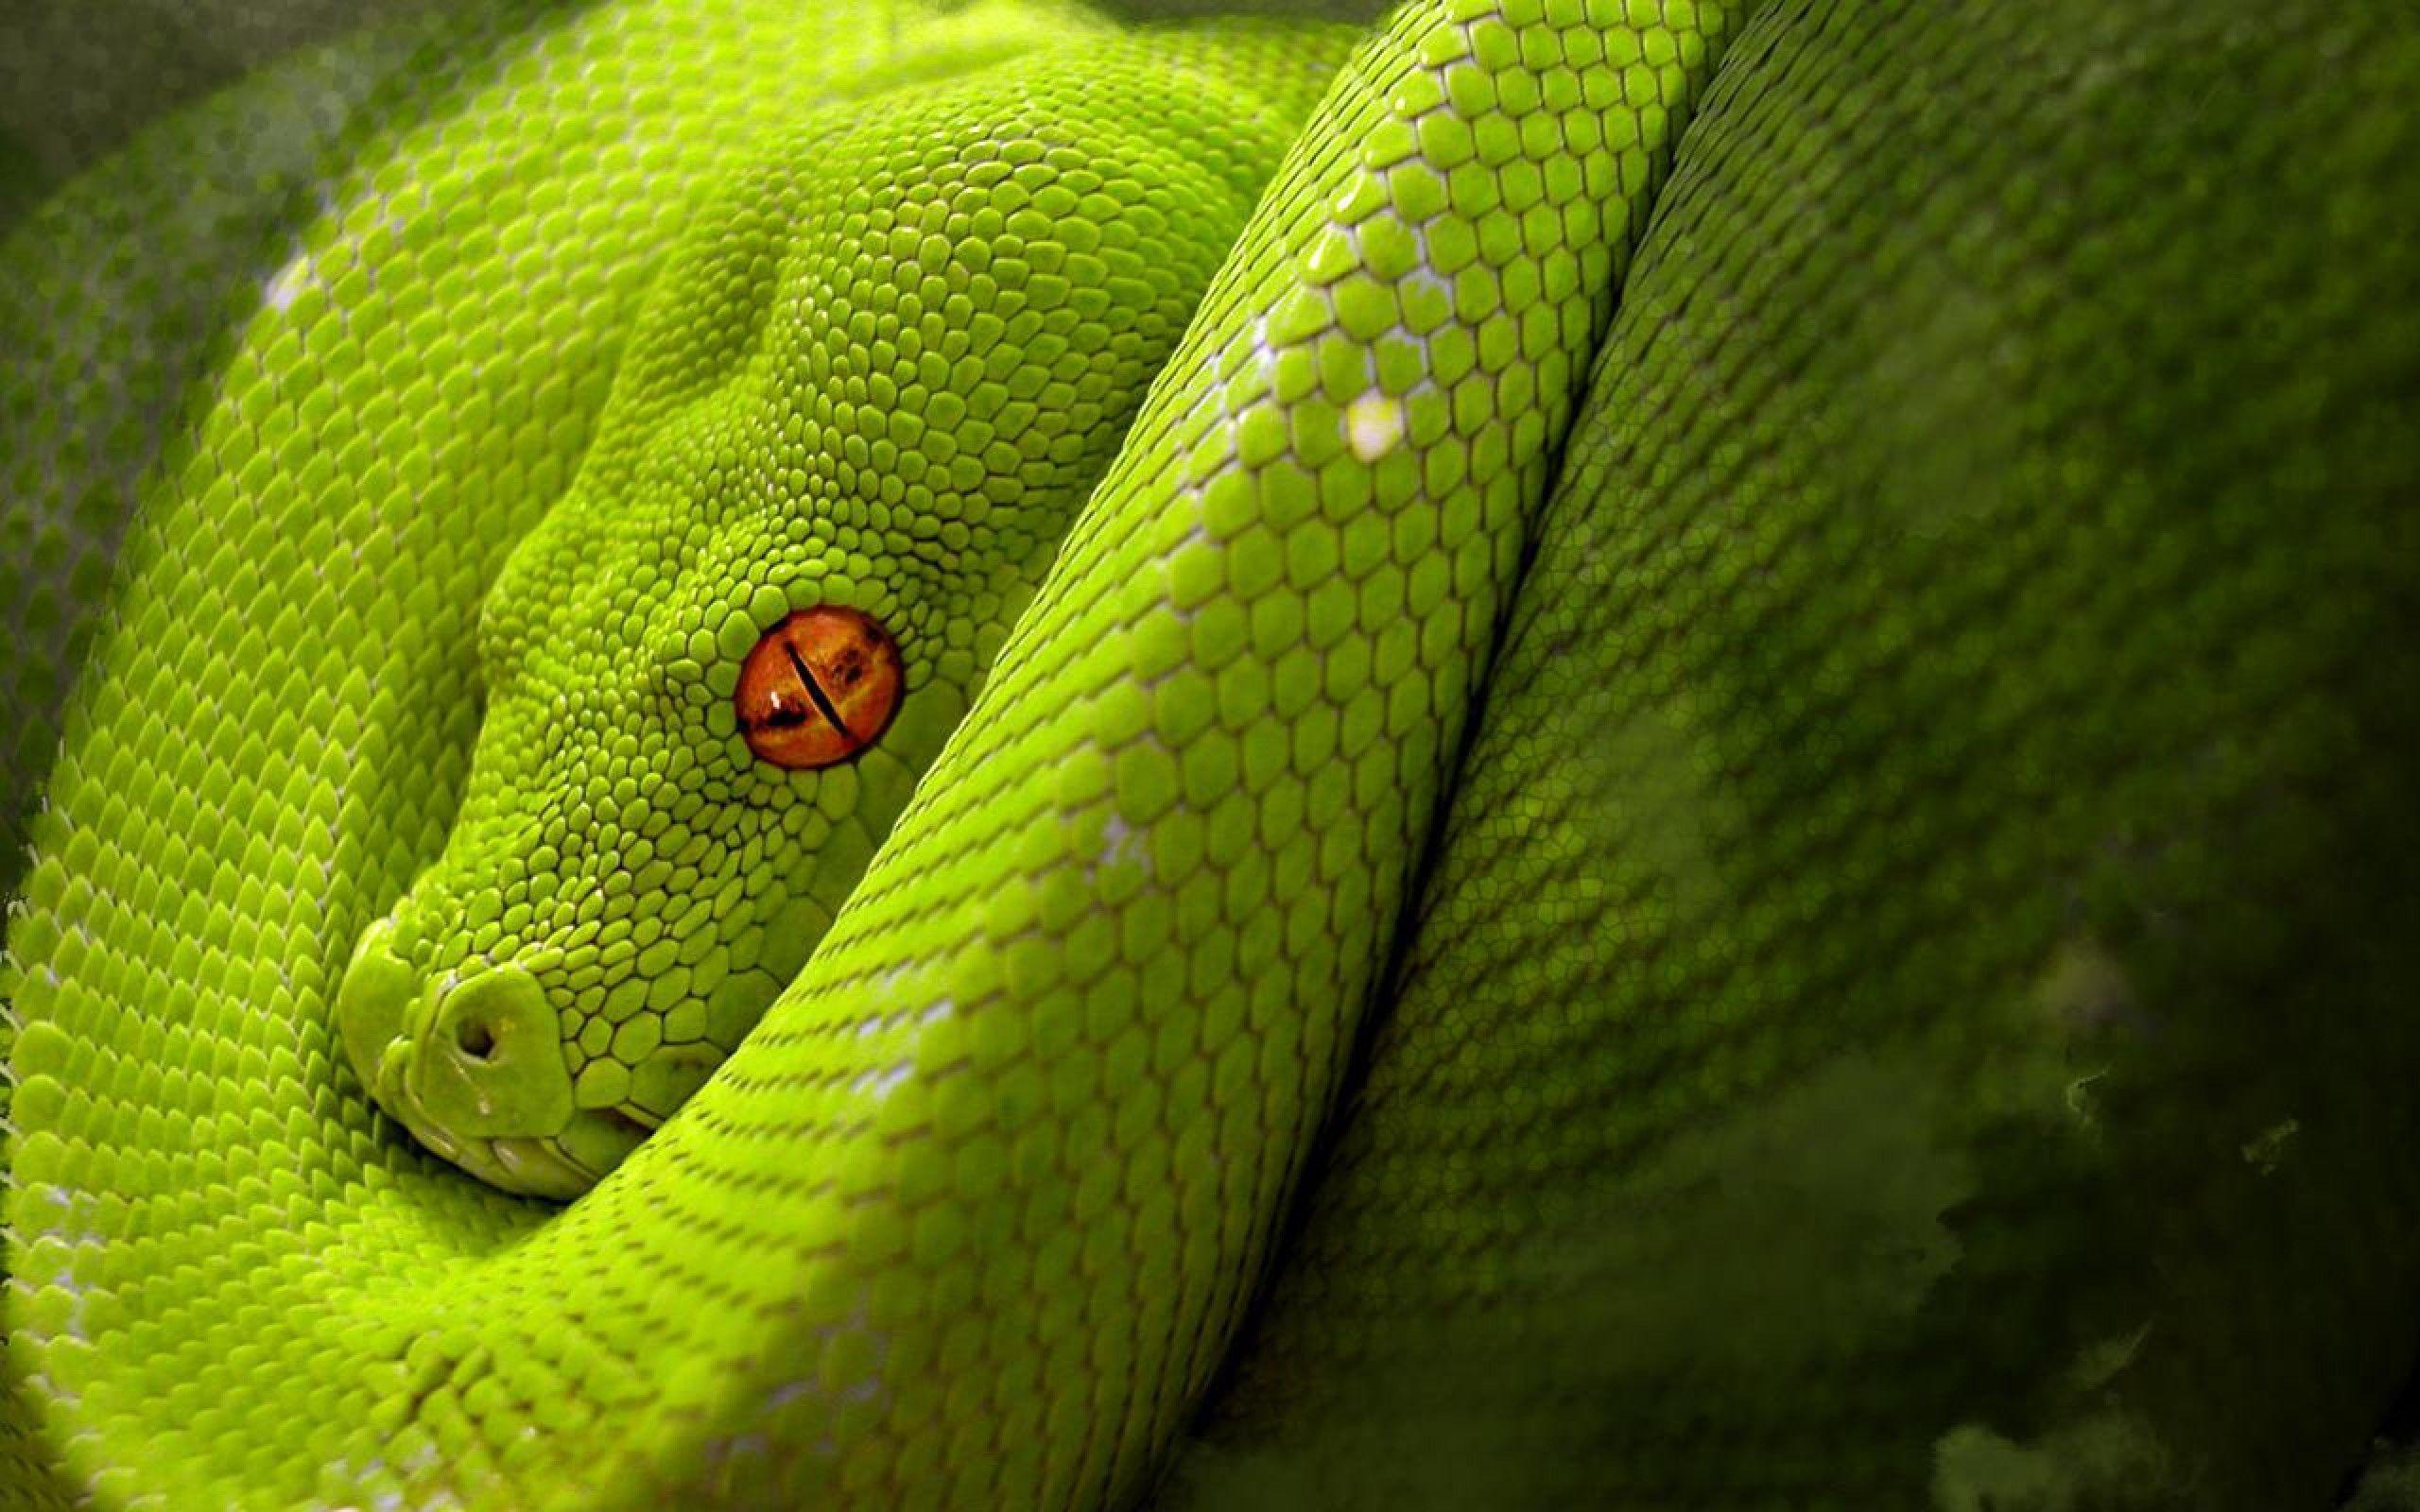 Astonishing Snake Desktop Wallpapers 1600x1200PX ~ Snake Wallpapers #